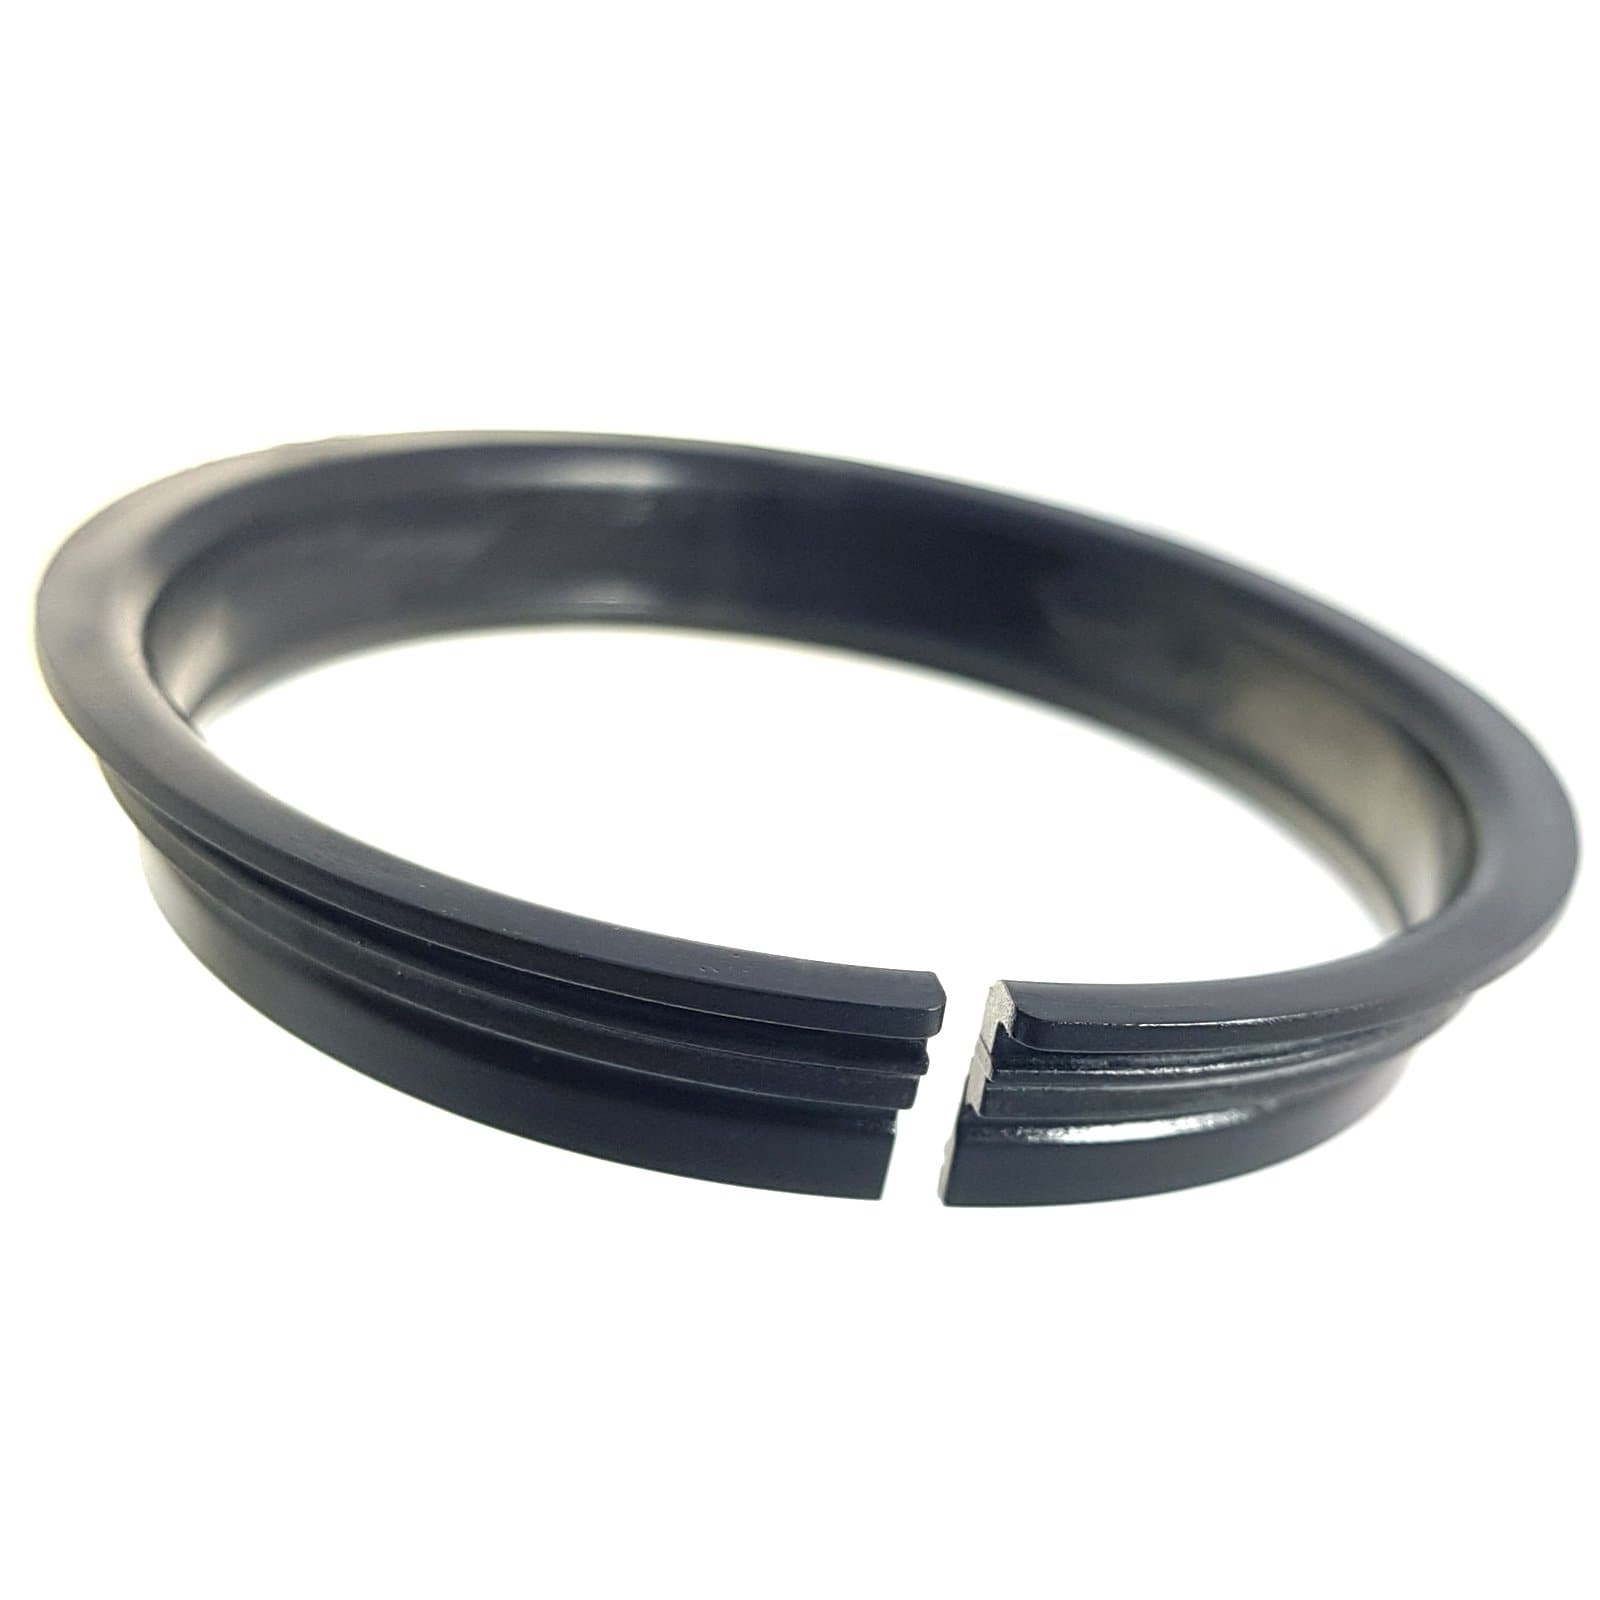 Friction Reduction Ring - Replacement